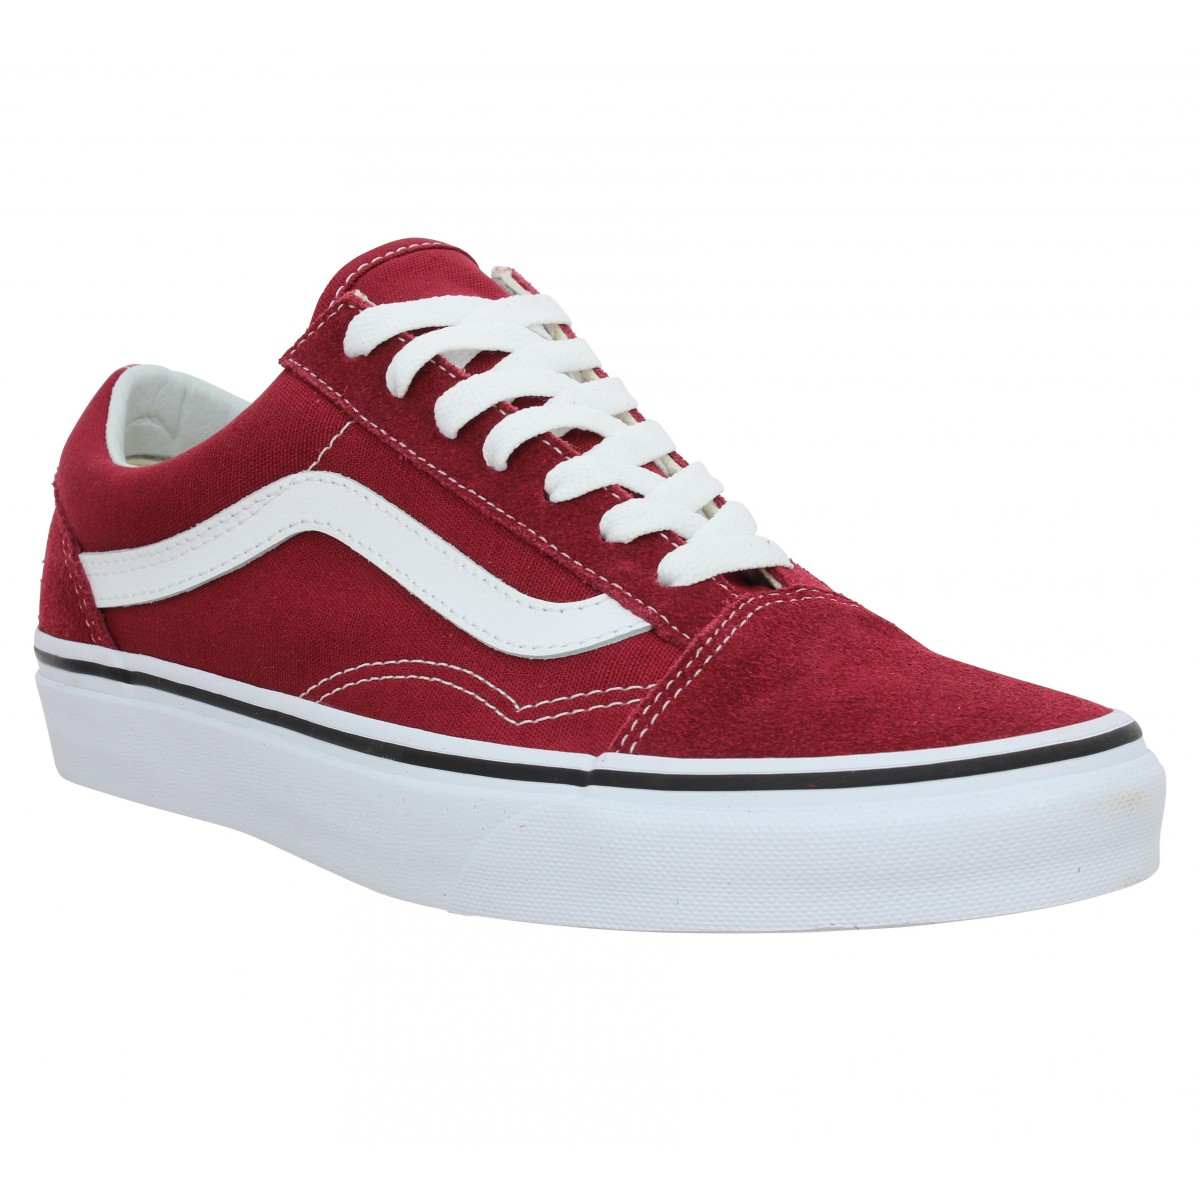 VANS Old Skool velours toile Bordeaux